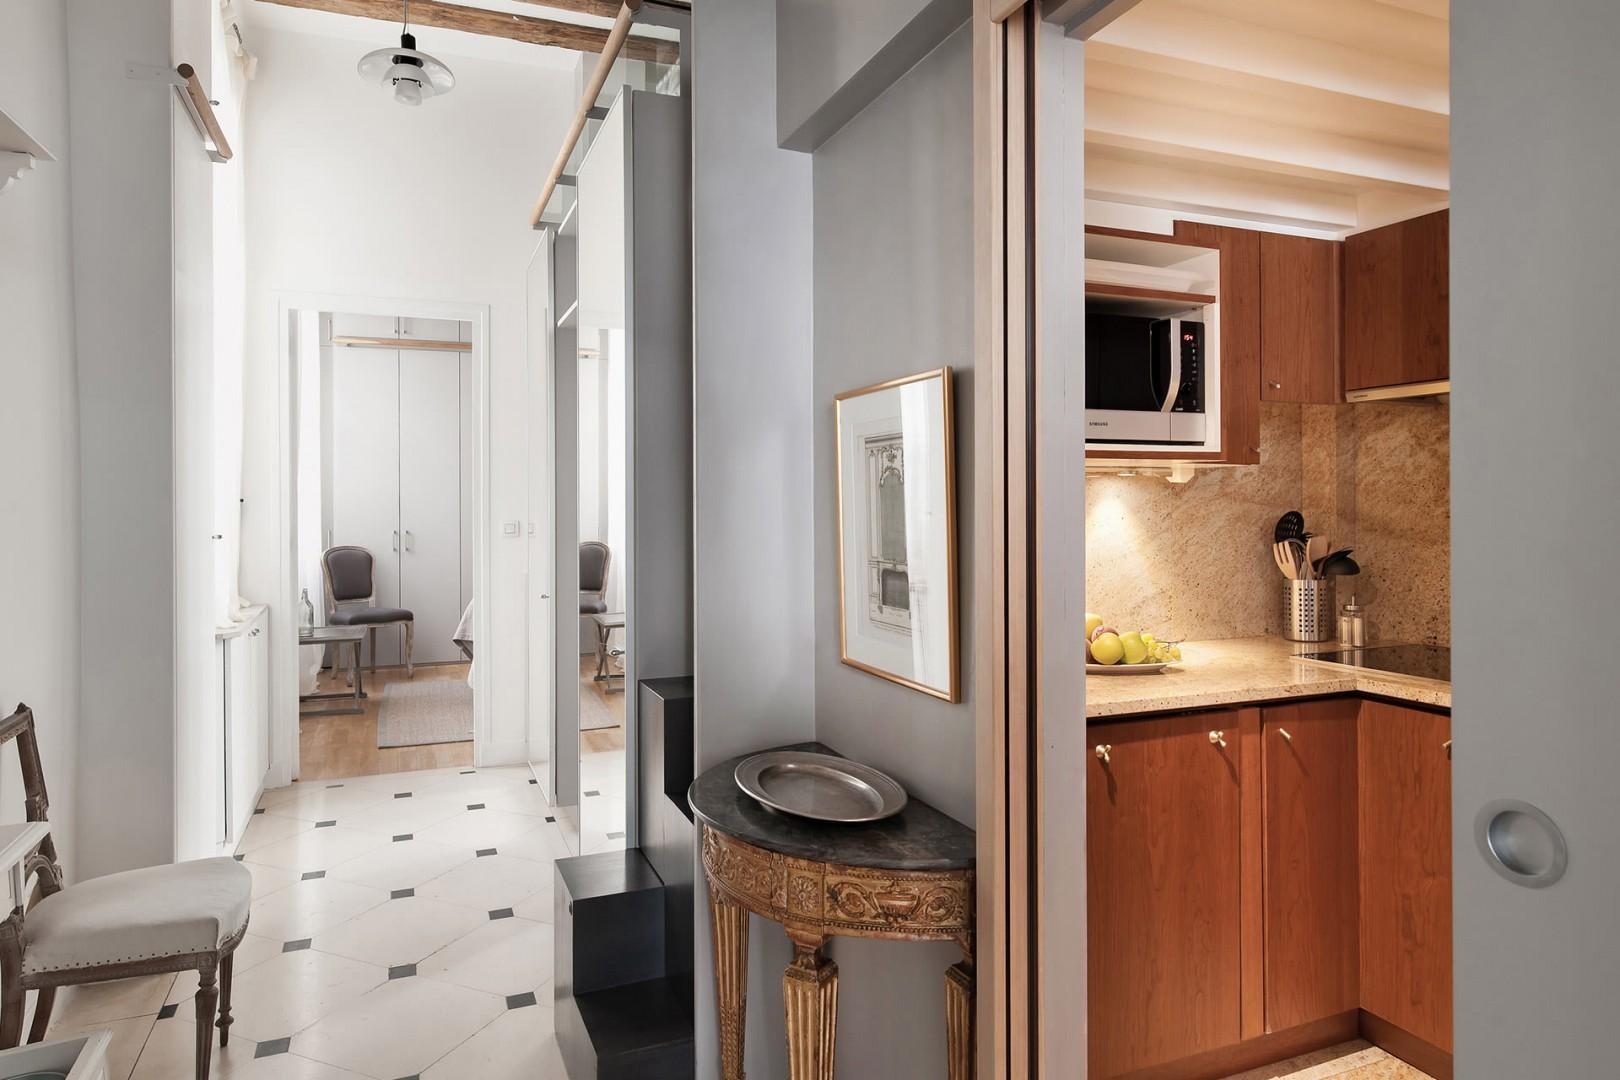 View of the kitchen from the hallway